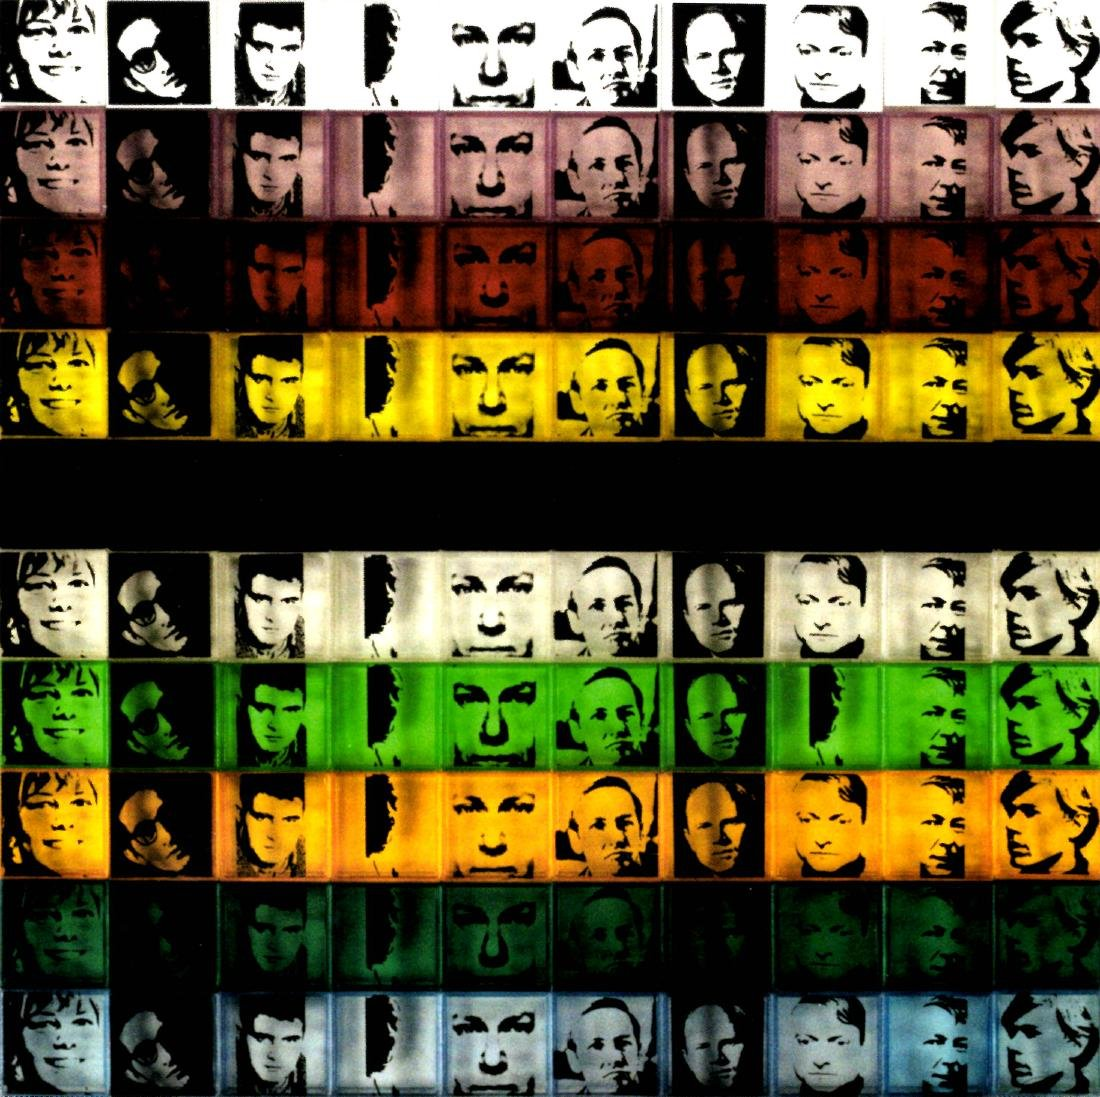 Ansy Warhol - Portraits of the Artists